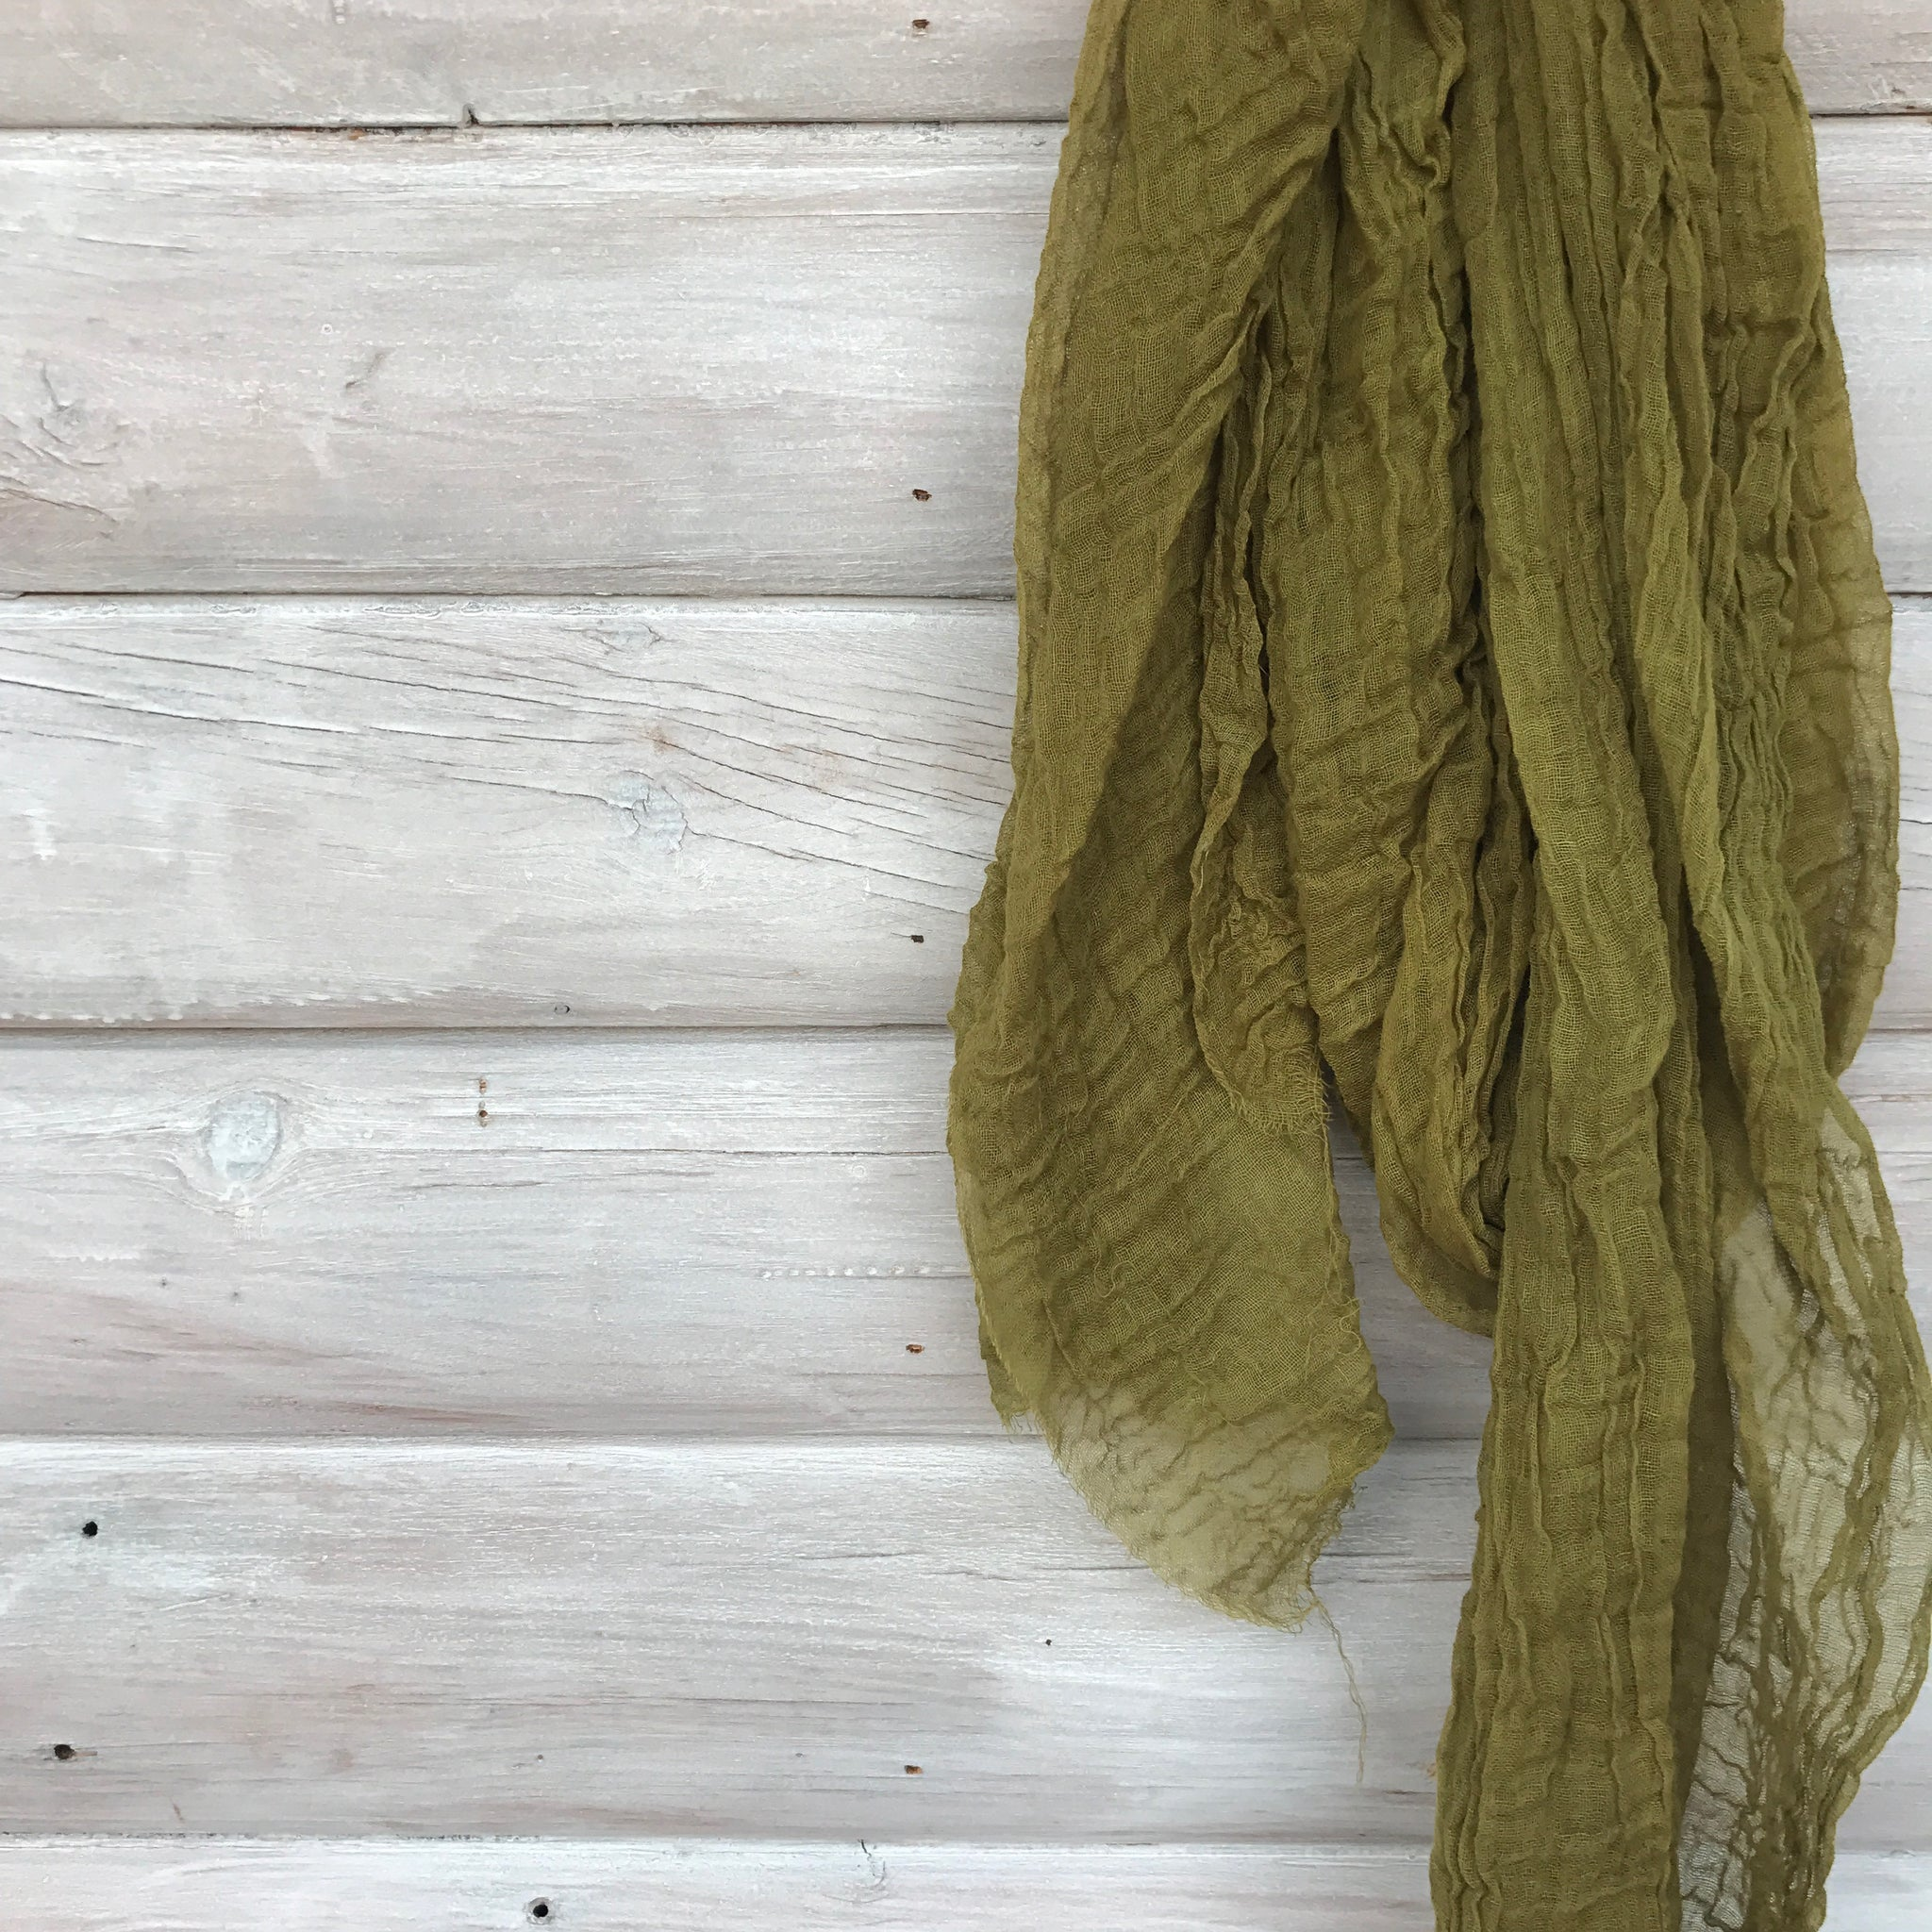 Organic Cotton Scarf in Iceland by Scarfshop